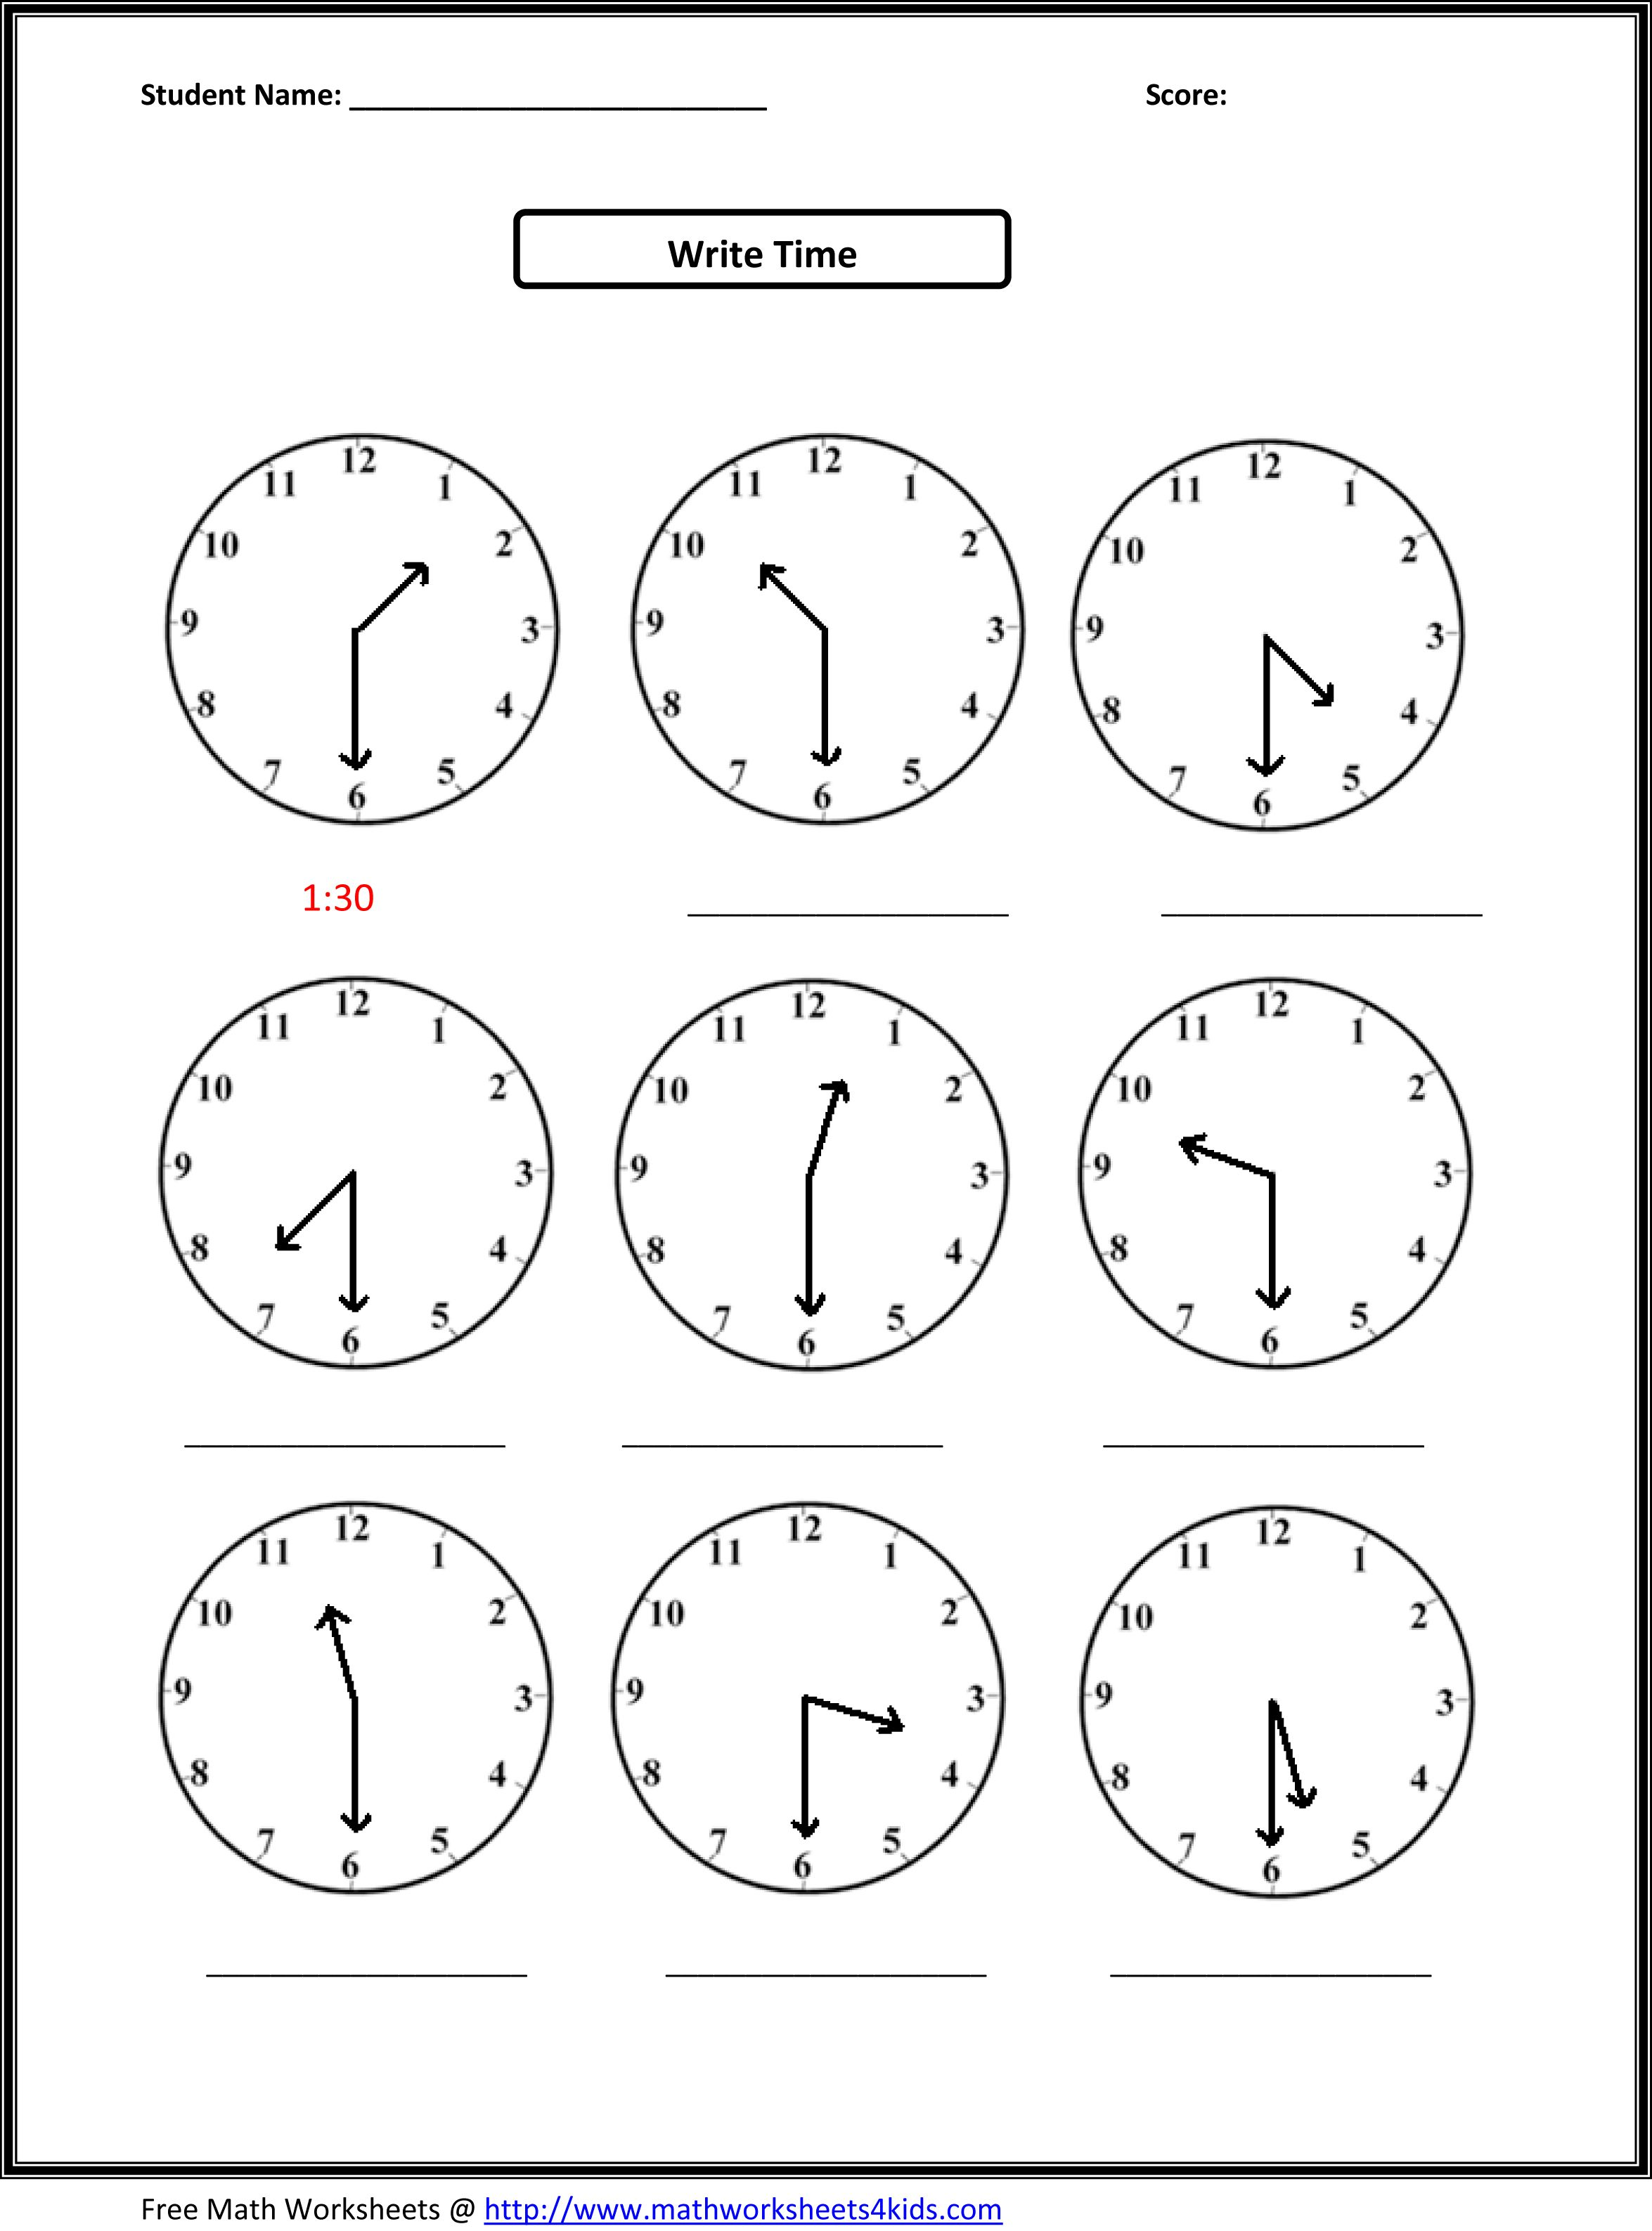 Weirdmailus  Marvellous Worksheet On Time For Grade   Reocurent With Magnificent Free Printable Telling Time Worksheets Nd Grade  Reocurent With Delectable Free Printable Make Your Own Handwriting Worksheets Also Divisibility Rules Worksheets Th Grade In Addition Common Noun Proper Noun Worksheets And Worksheets In Vba As Well As Letter C Printable Worksheet Additionally Subtraction Across Zero Worksheets From Reocurentcom With Weirdmailus  Magnificent Worksheet On Time For Grade   Reocurent With Delectable Free Printable Telling Time Worksheets Nd Grade  Reocurent And Marvellous Free Printable Make Your Own Handwriting Worksheets Also Divisibility Rules Worksheets Th Grade In Addition Common Noun Proper Noun Worksheets From Reocurentcom